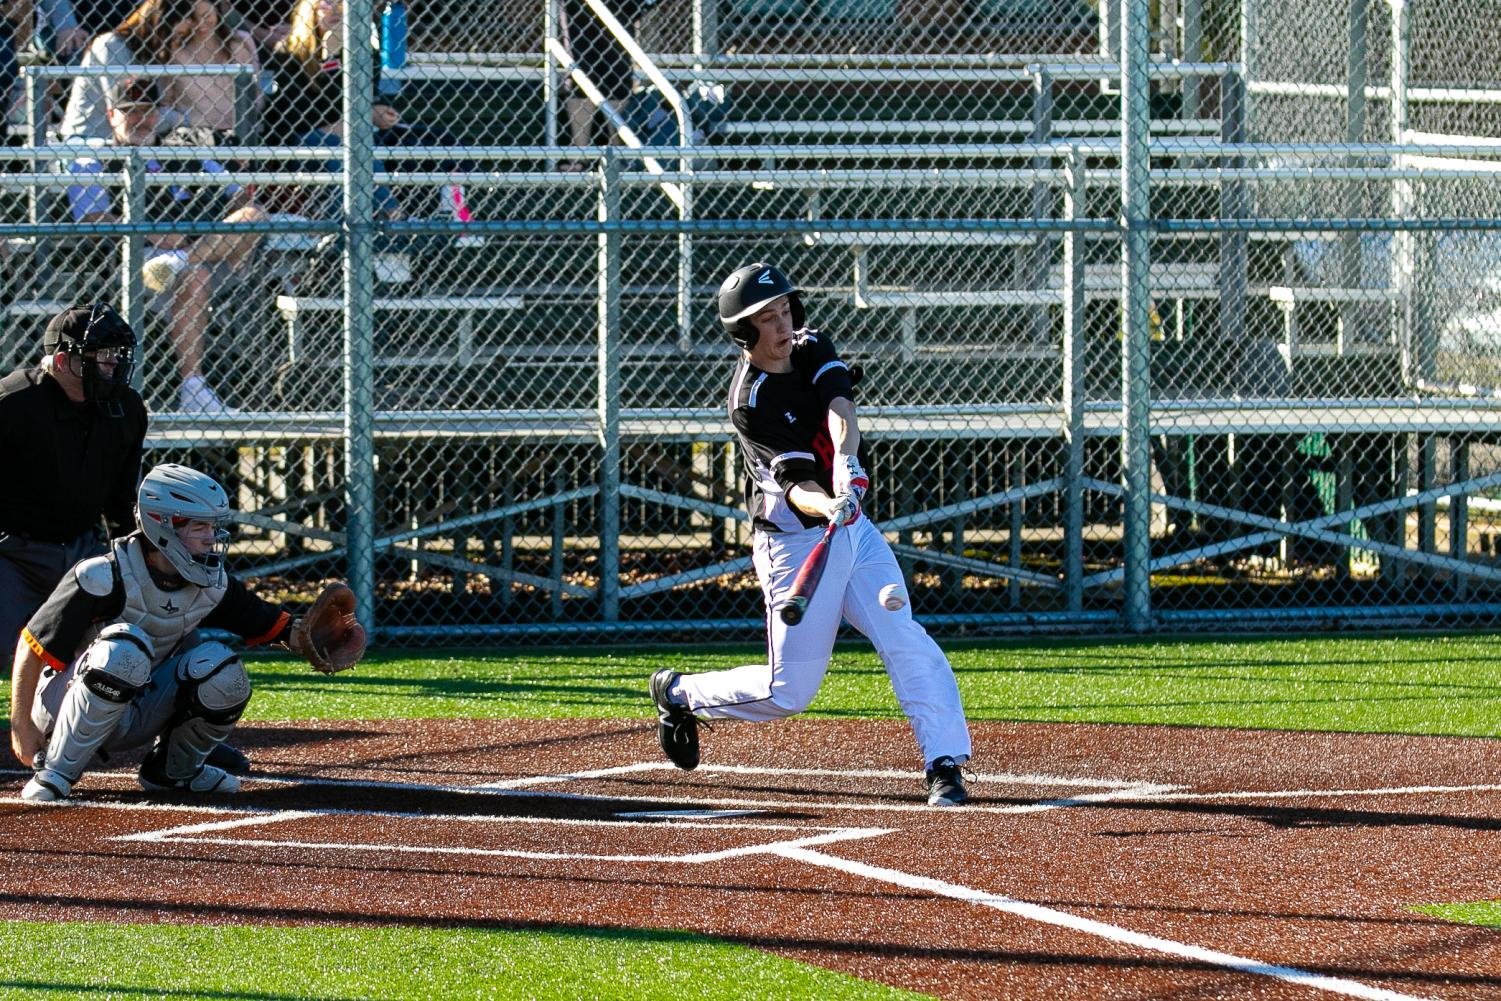 Caden Alley swings his bat at the ball